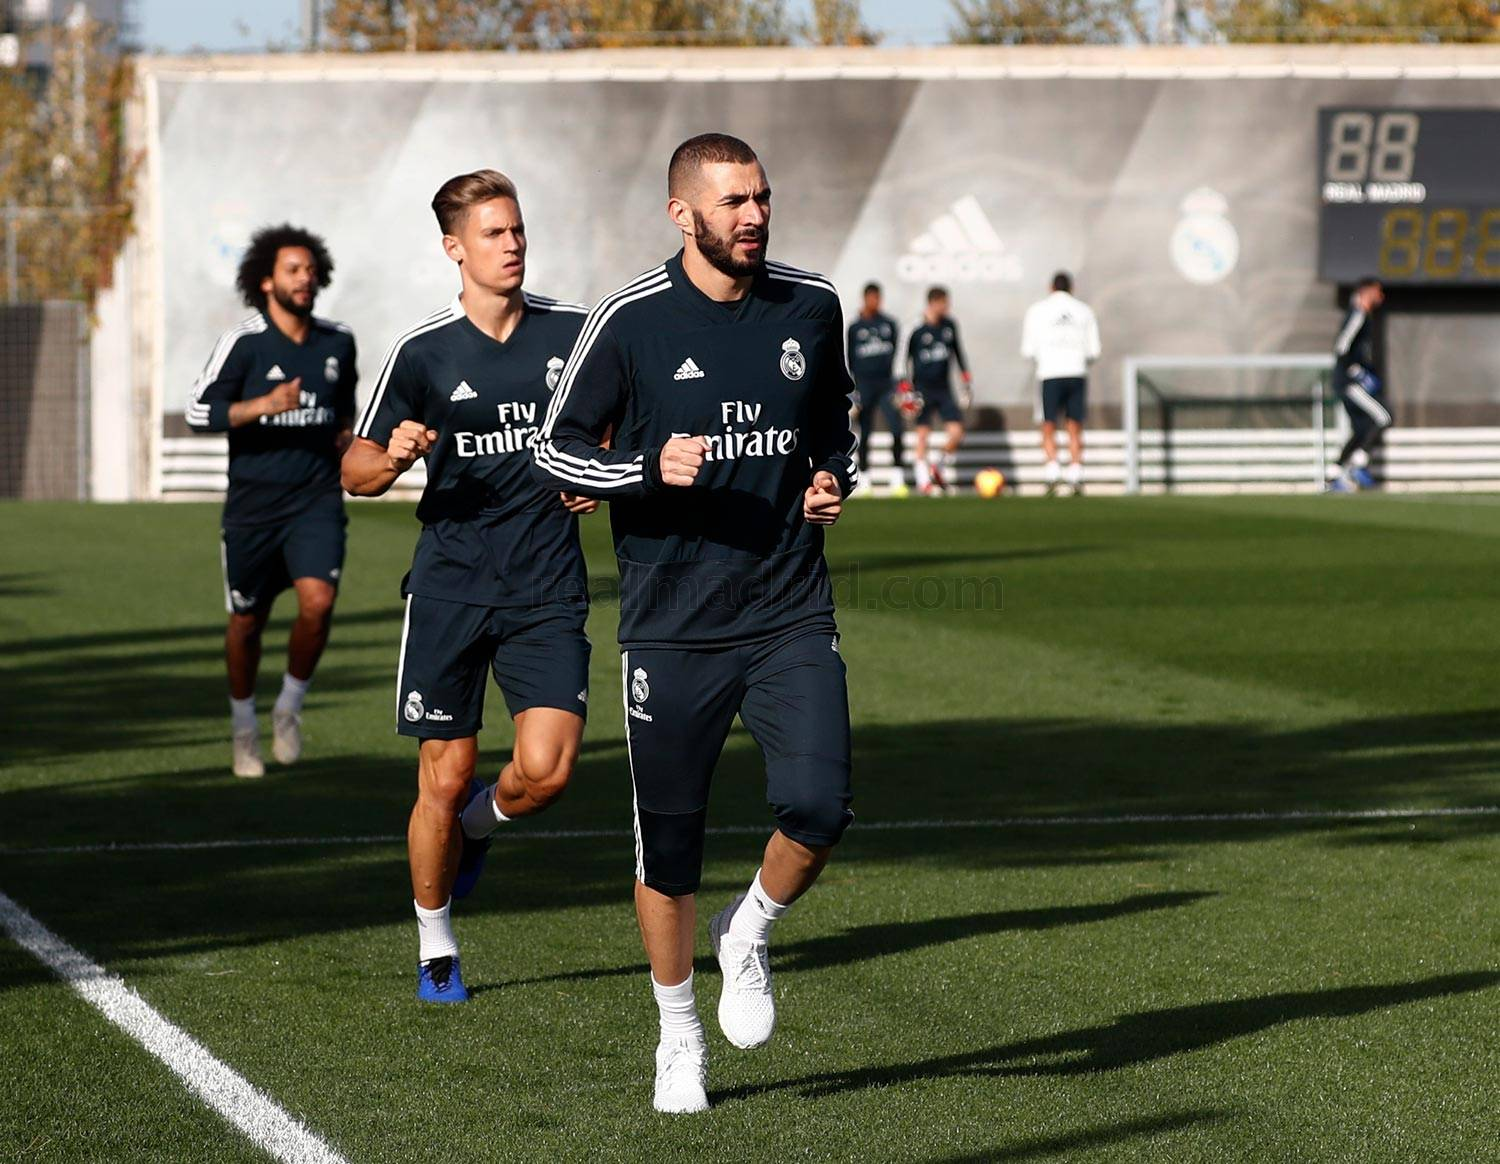 Real Madrid - Entrenamiento del Real Madrid - 13-11-2018